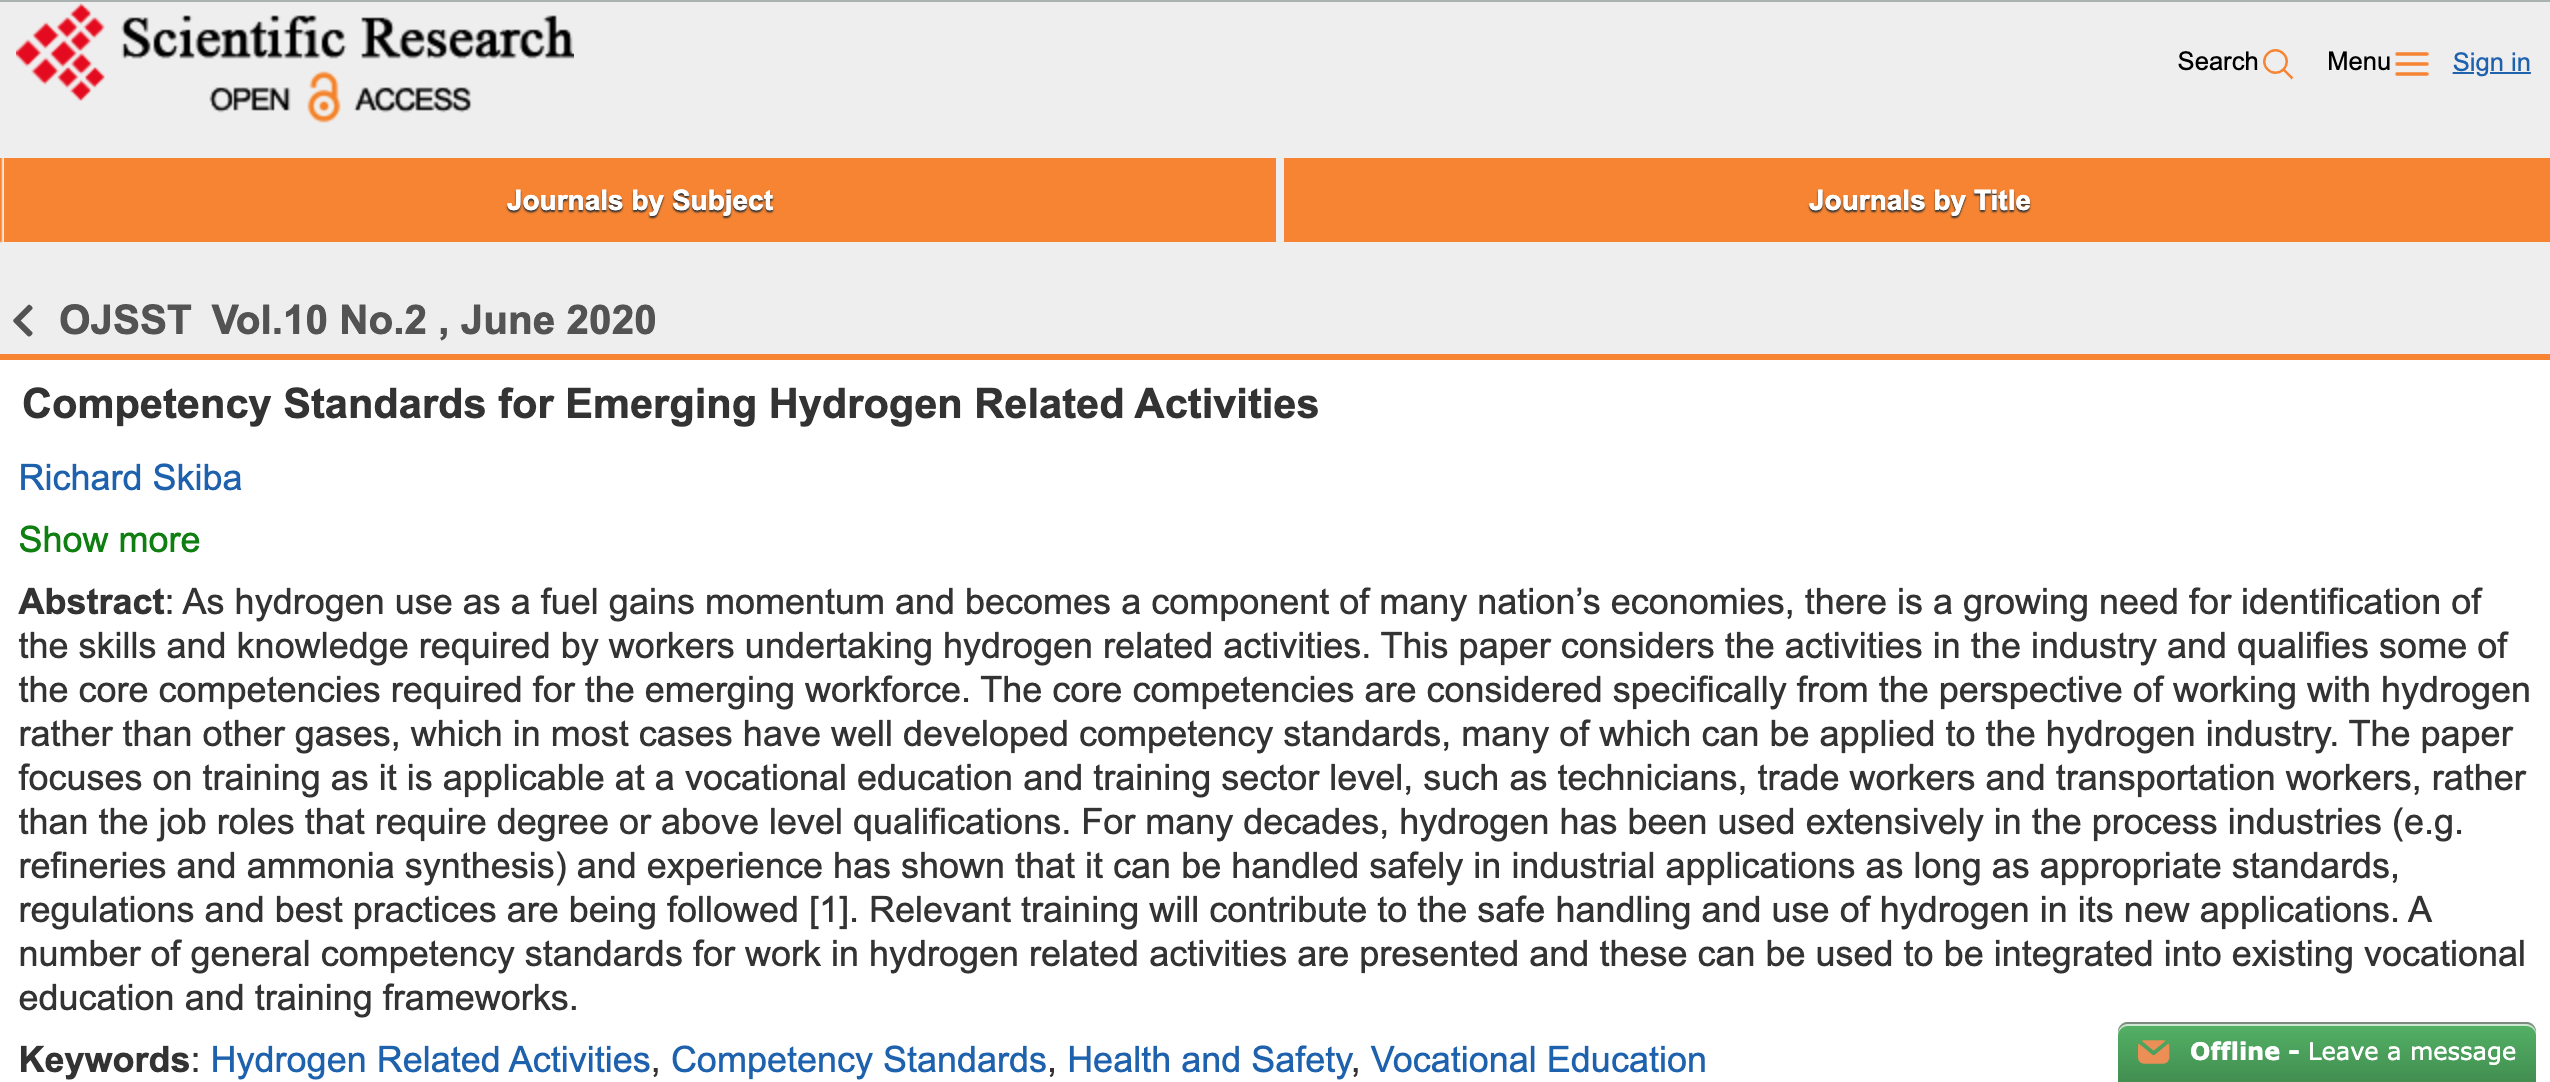 Competency Standards for Emerging Hydrogen Related Activities